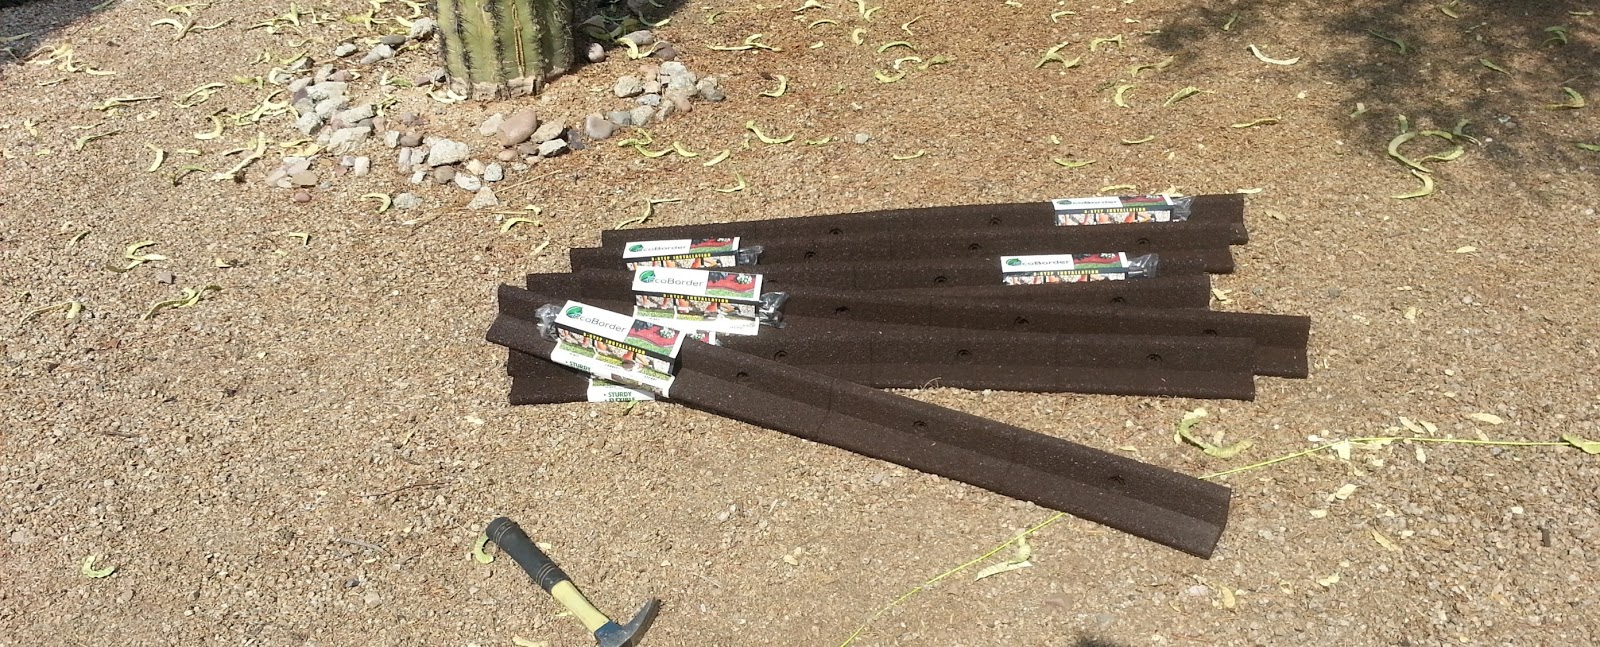 Landscape Edging Home Hardware : Green quot products more often when given the choice this edging